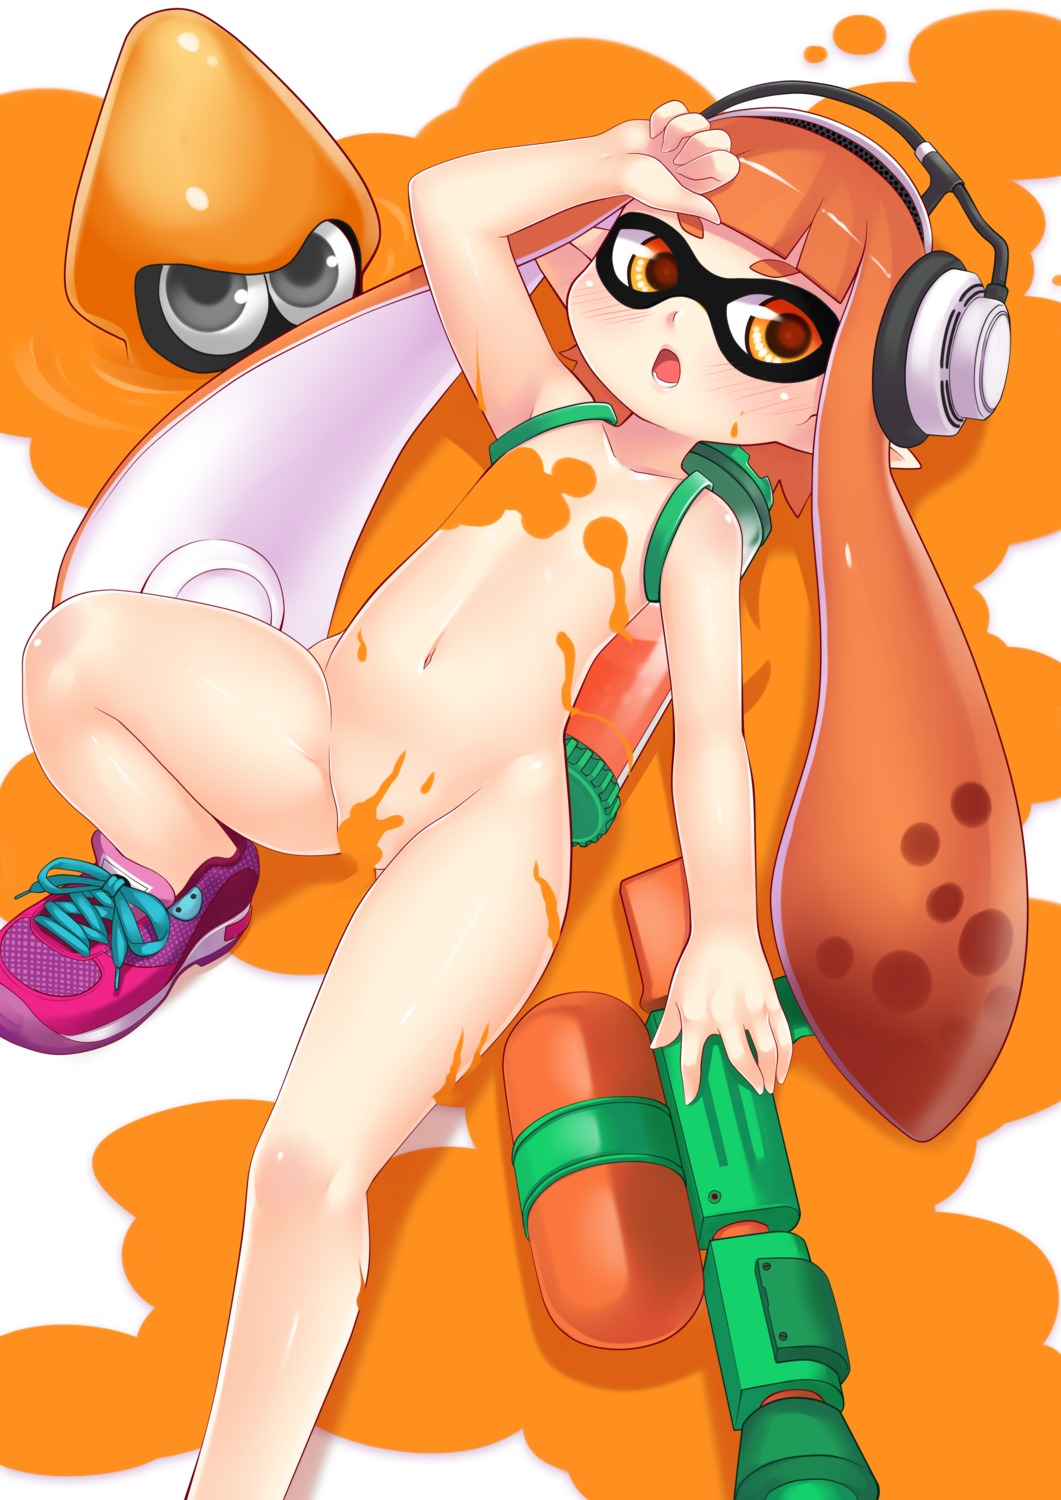 gun headphones inkling_(splatoon) loli megane naked ookami_ryuu pointy_ears splatoon